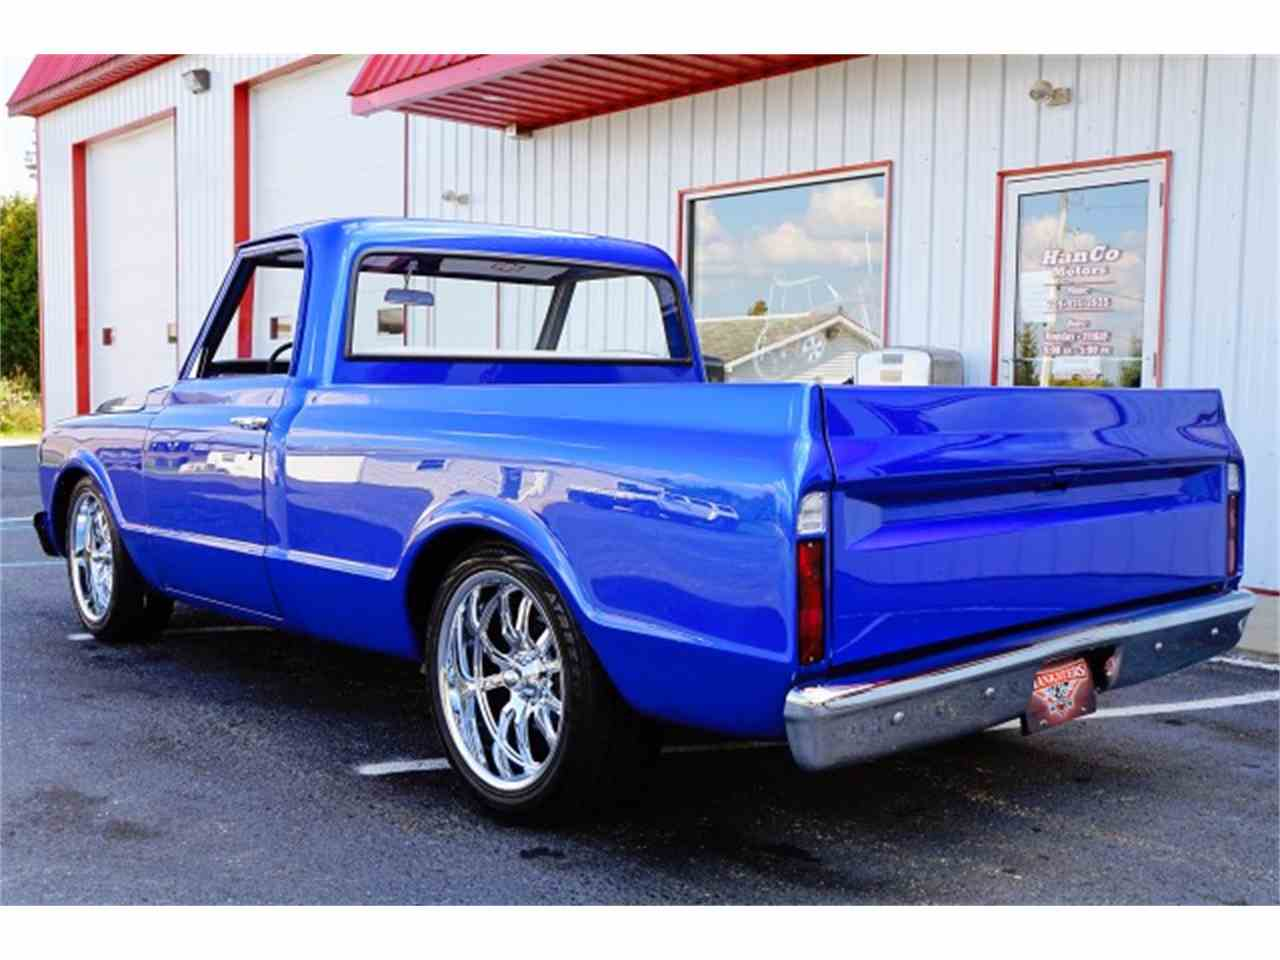 All Chevy chevy 1967 : All Chevy » 1967 Chevy C10 For Sale - Old Chevy Photos Collection ...